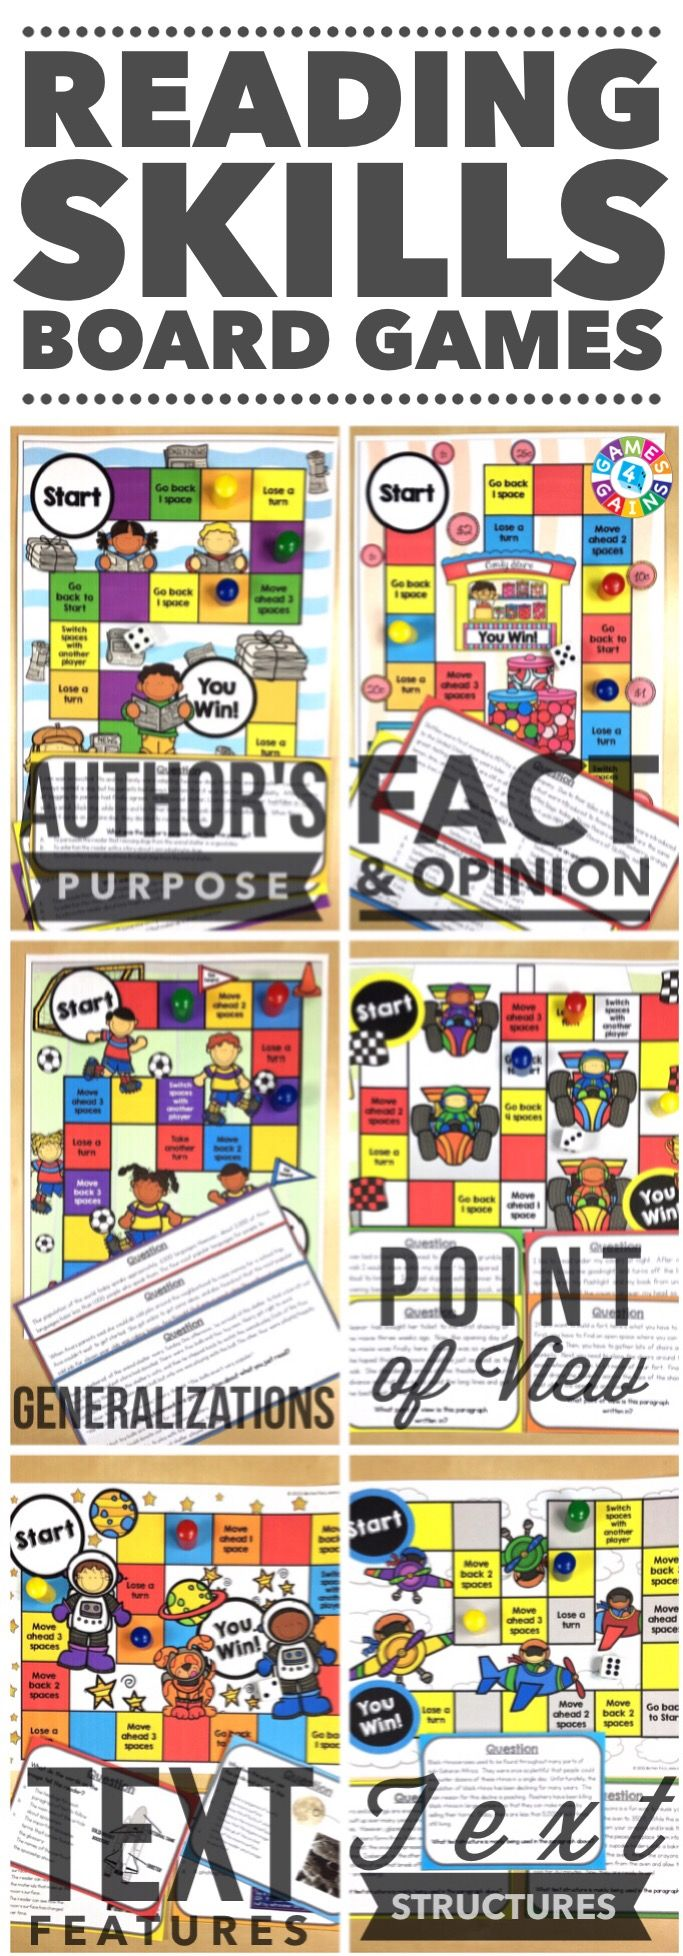 """My students ask to play these everyday!"" Students will love to practice author's purpose, fact & opinion, generalizations, point of view, text features, and text structure with these engaging reading board games. Each game comes with a game board and 25+ game cards to help student practice these skills in a fun and exciting way!"